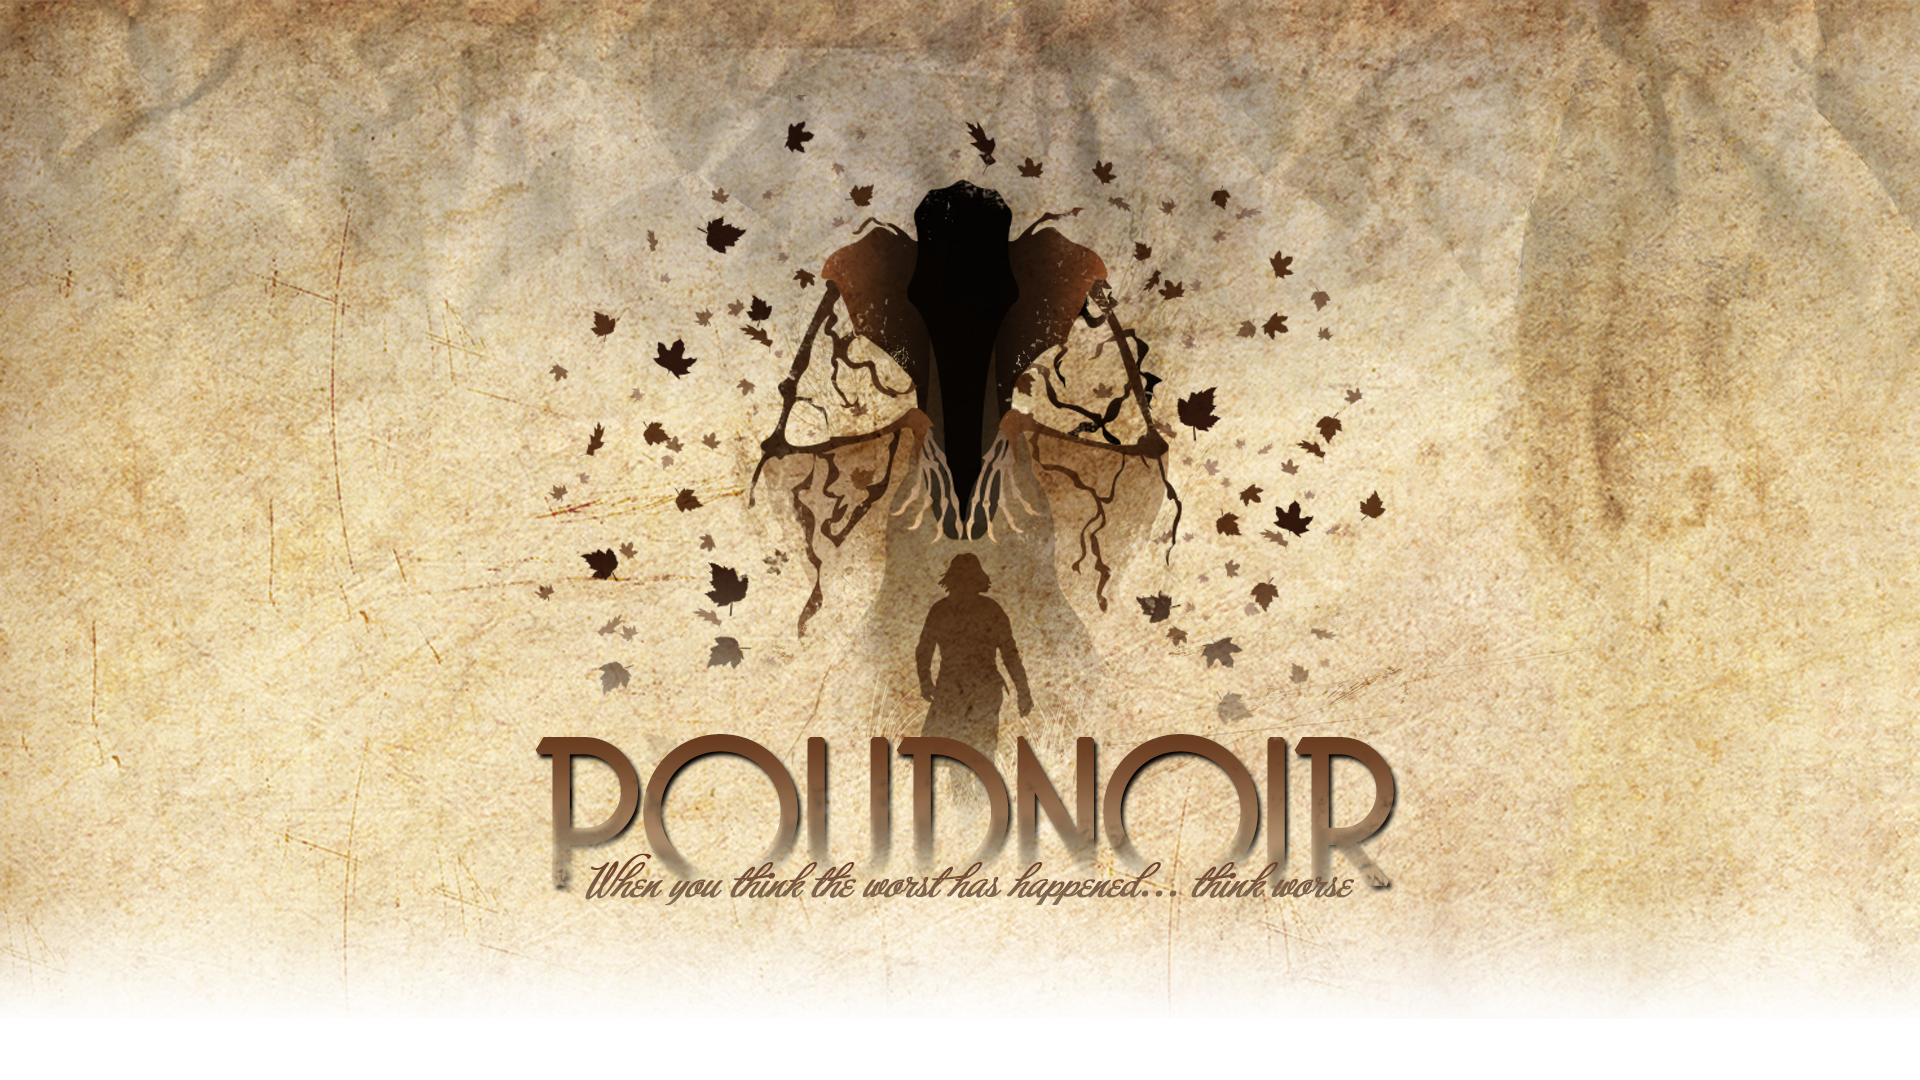 POUDNOIR 1453055880-header-fullhd